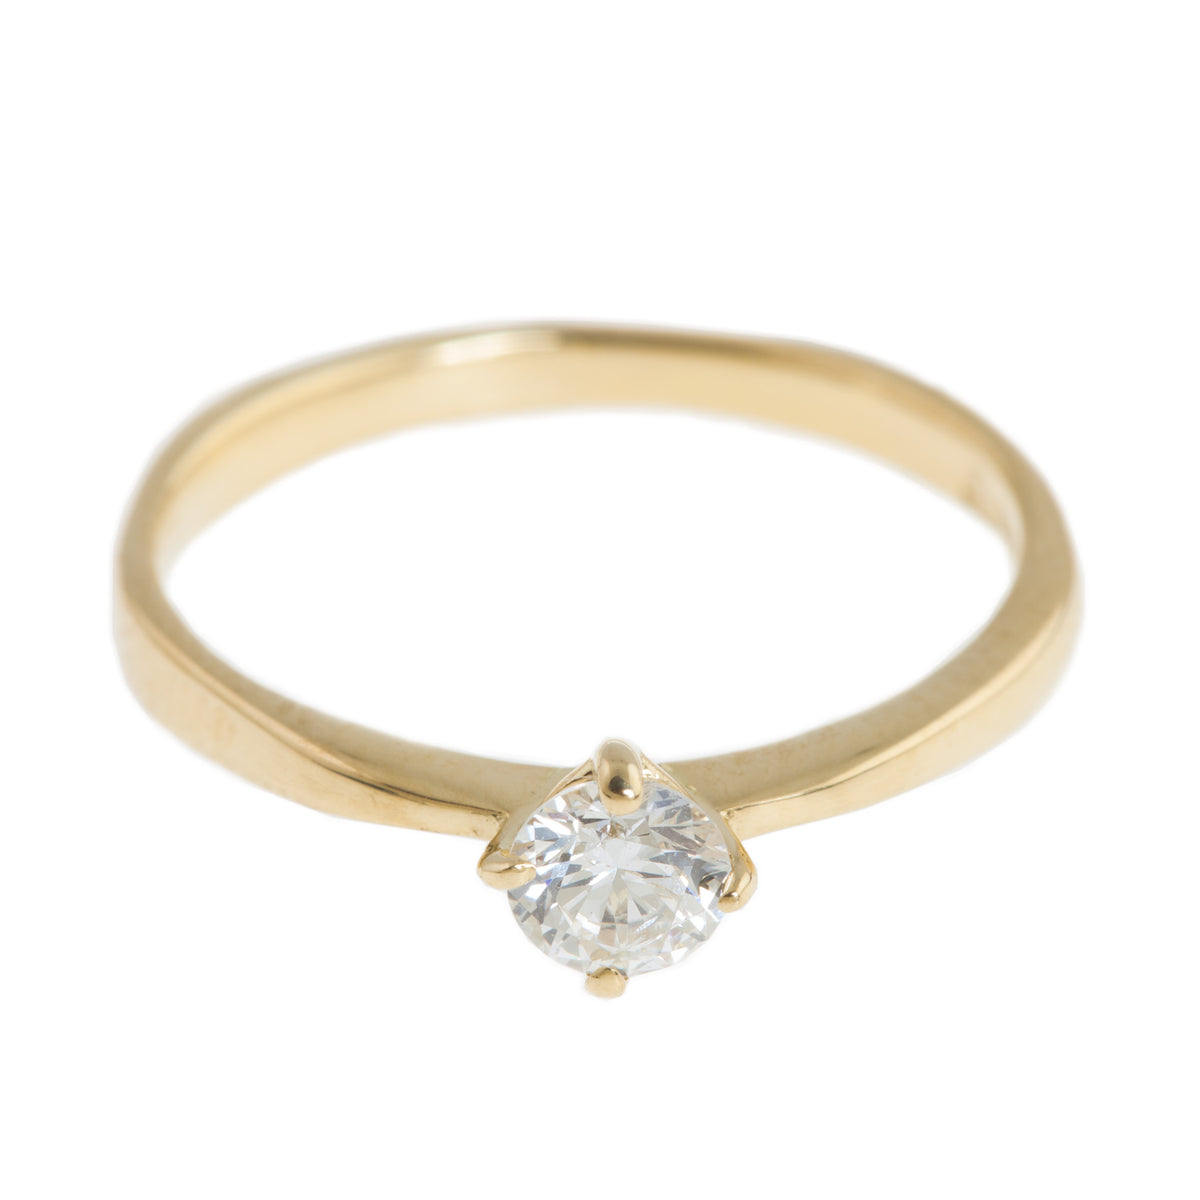 Queen Ring in 18ct Yellow or 18ct White Gold with Diamond